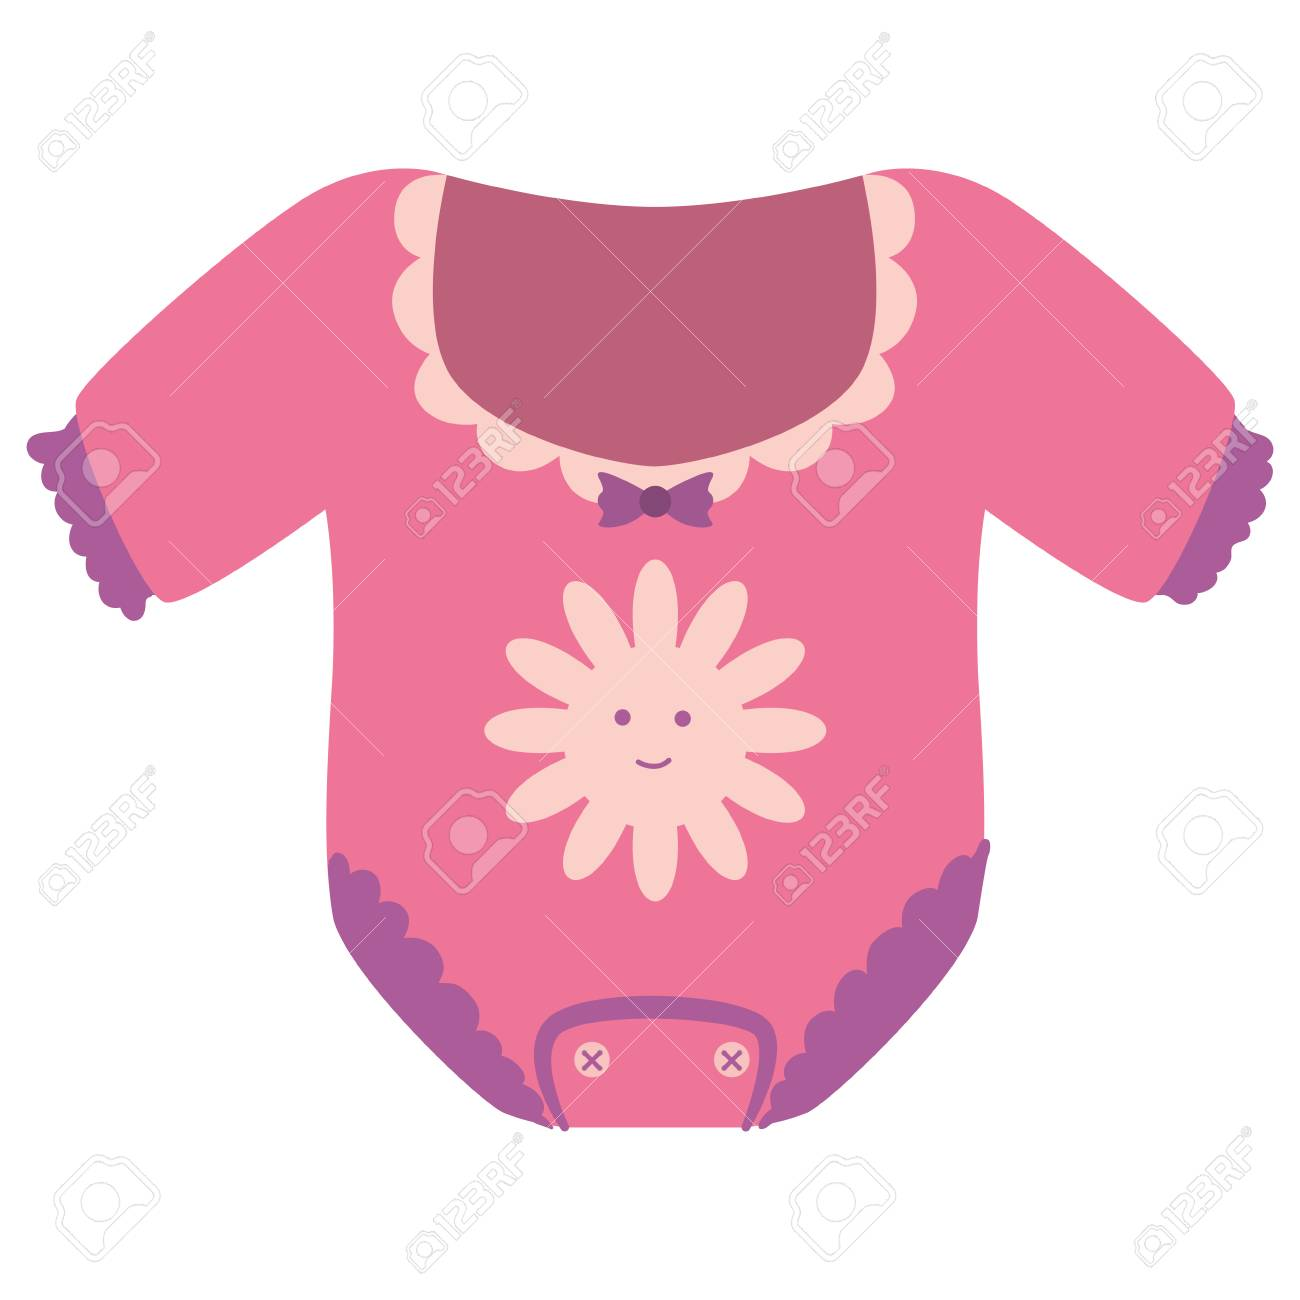 girl onesie baby shower related icon image vector illustration...